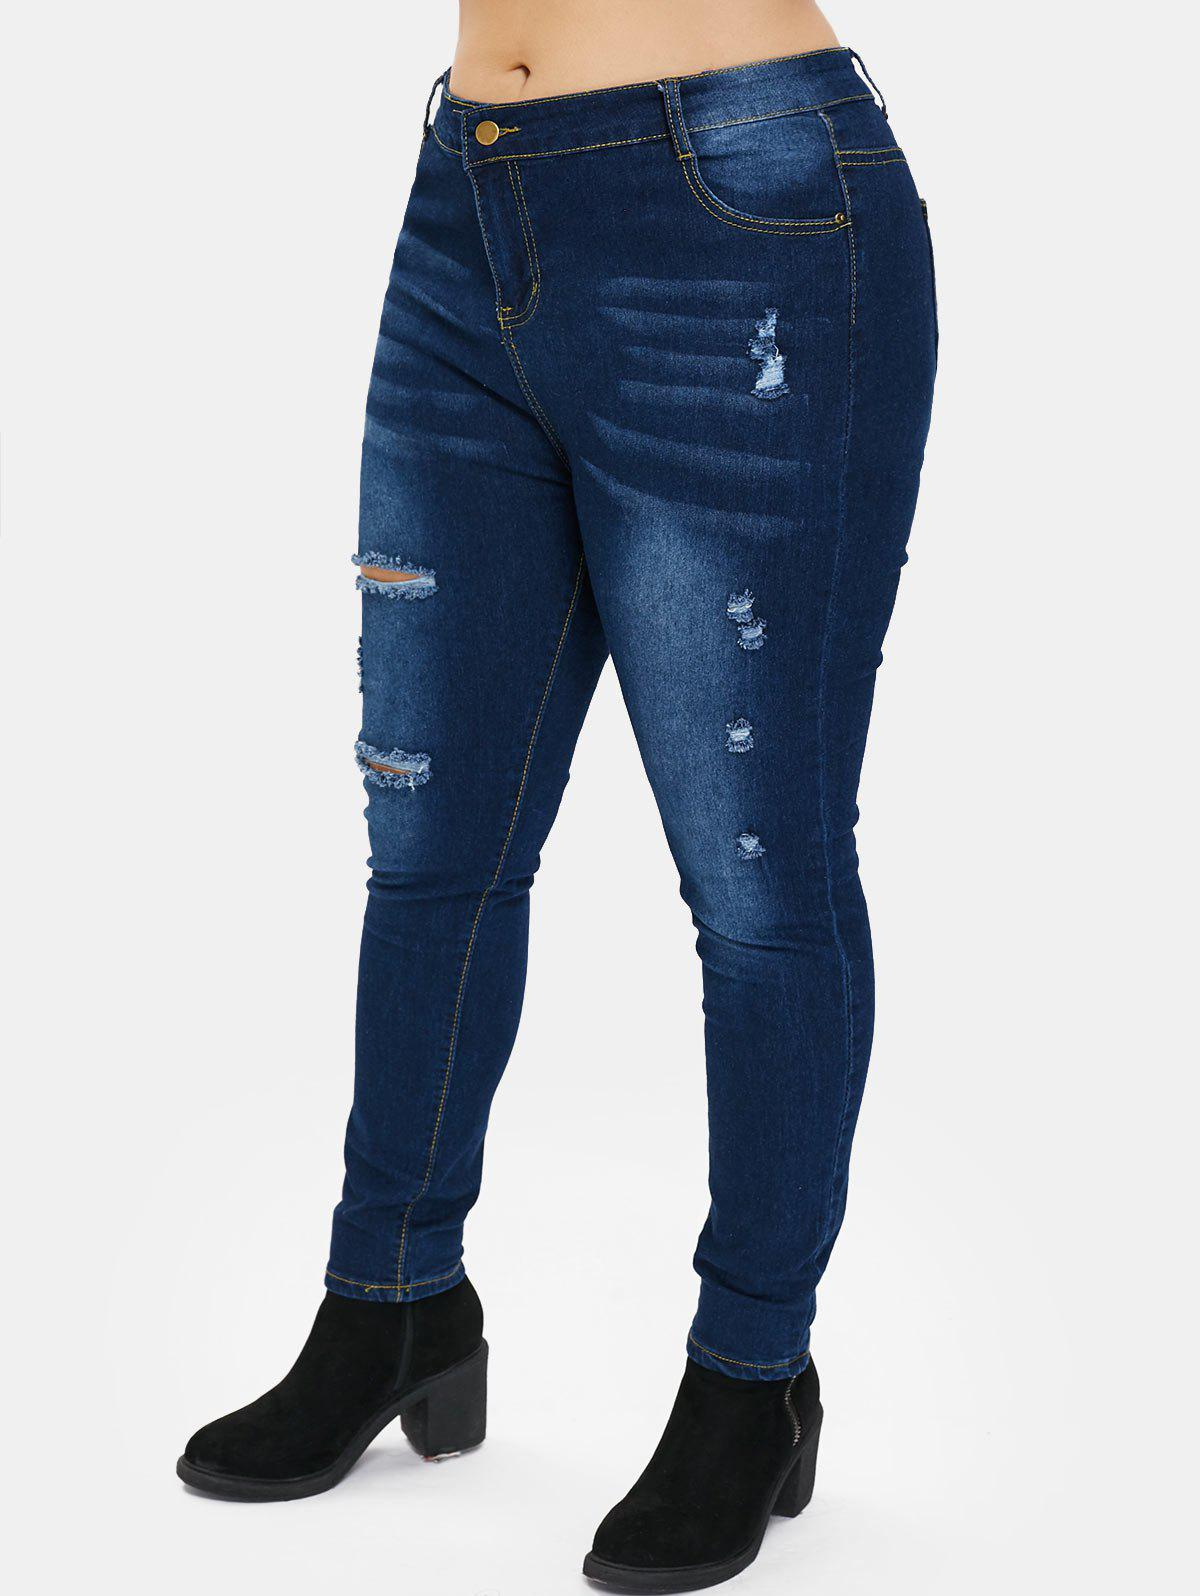 Buy Plus Size Zipper Fly Jeans with Hole